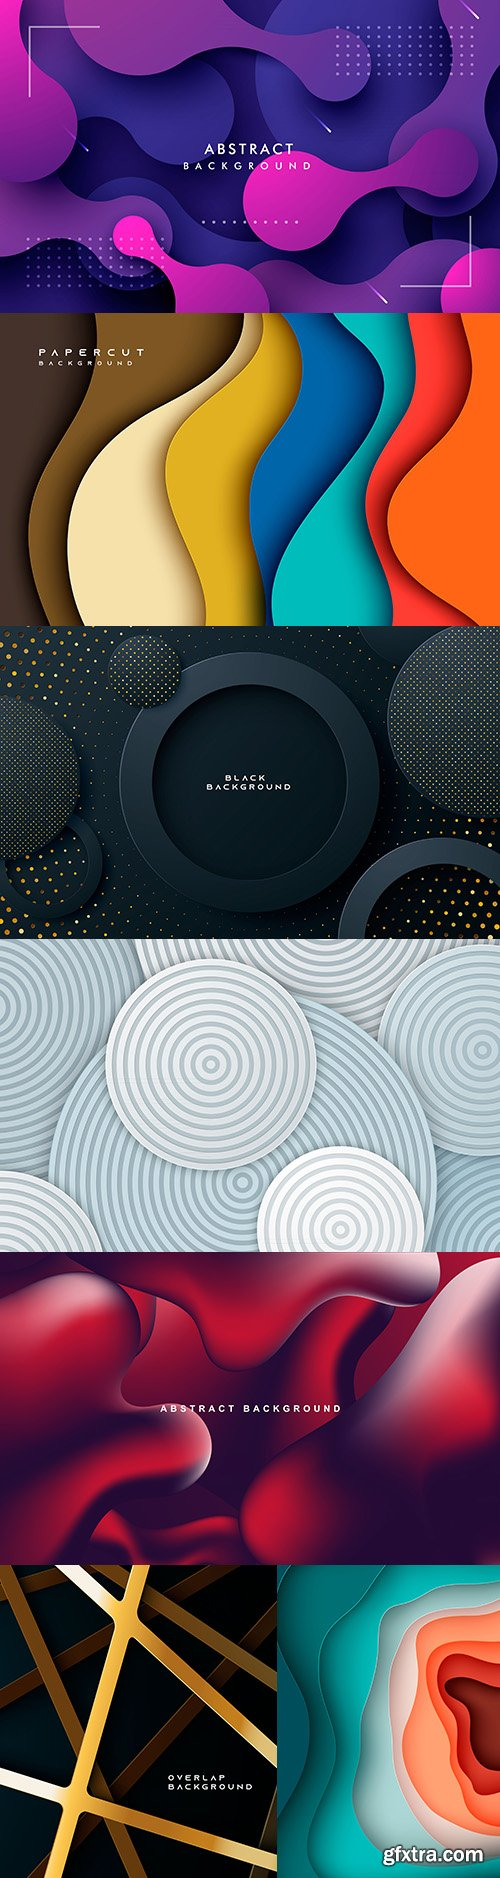 Color abstract dynamic form design background